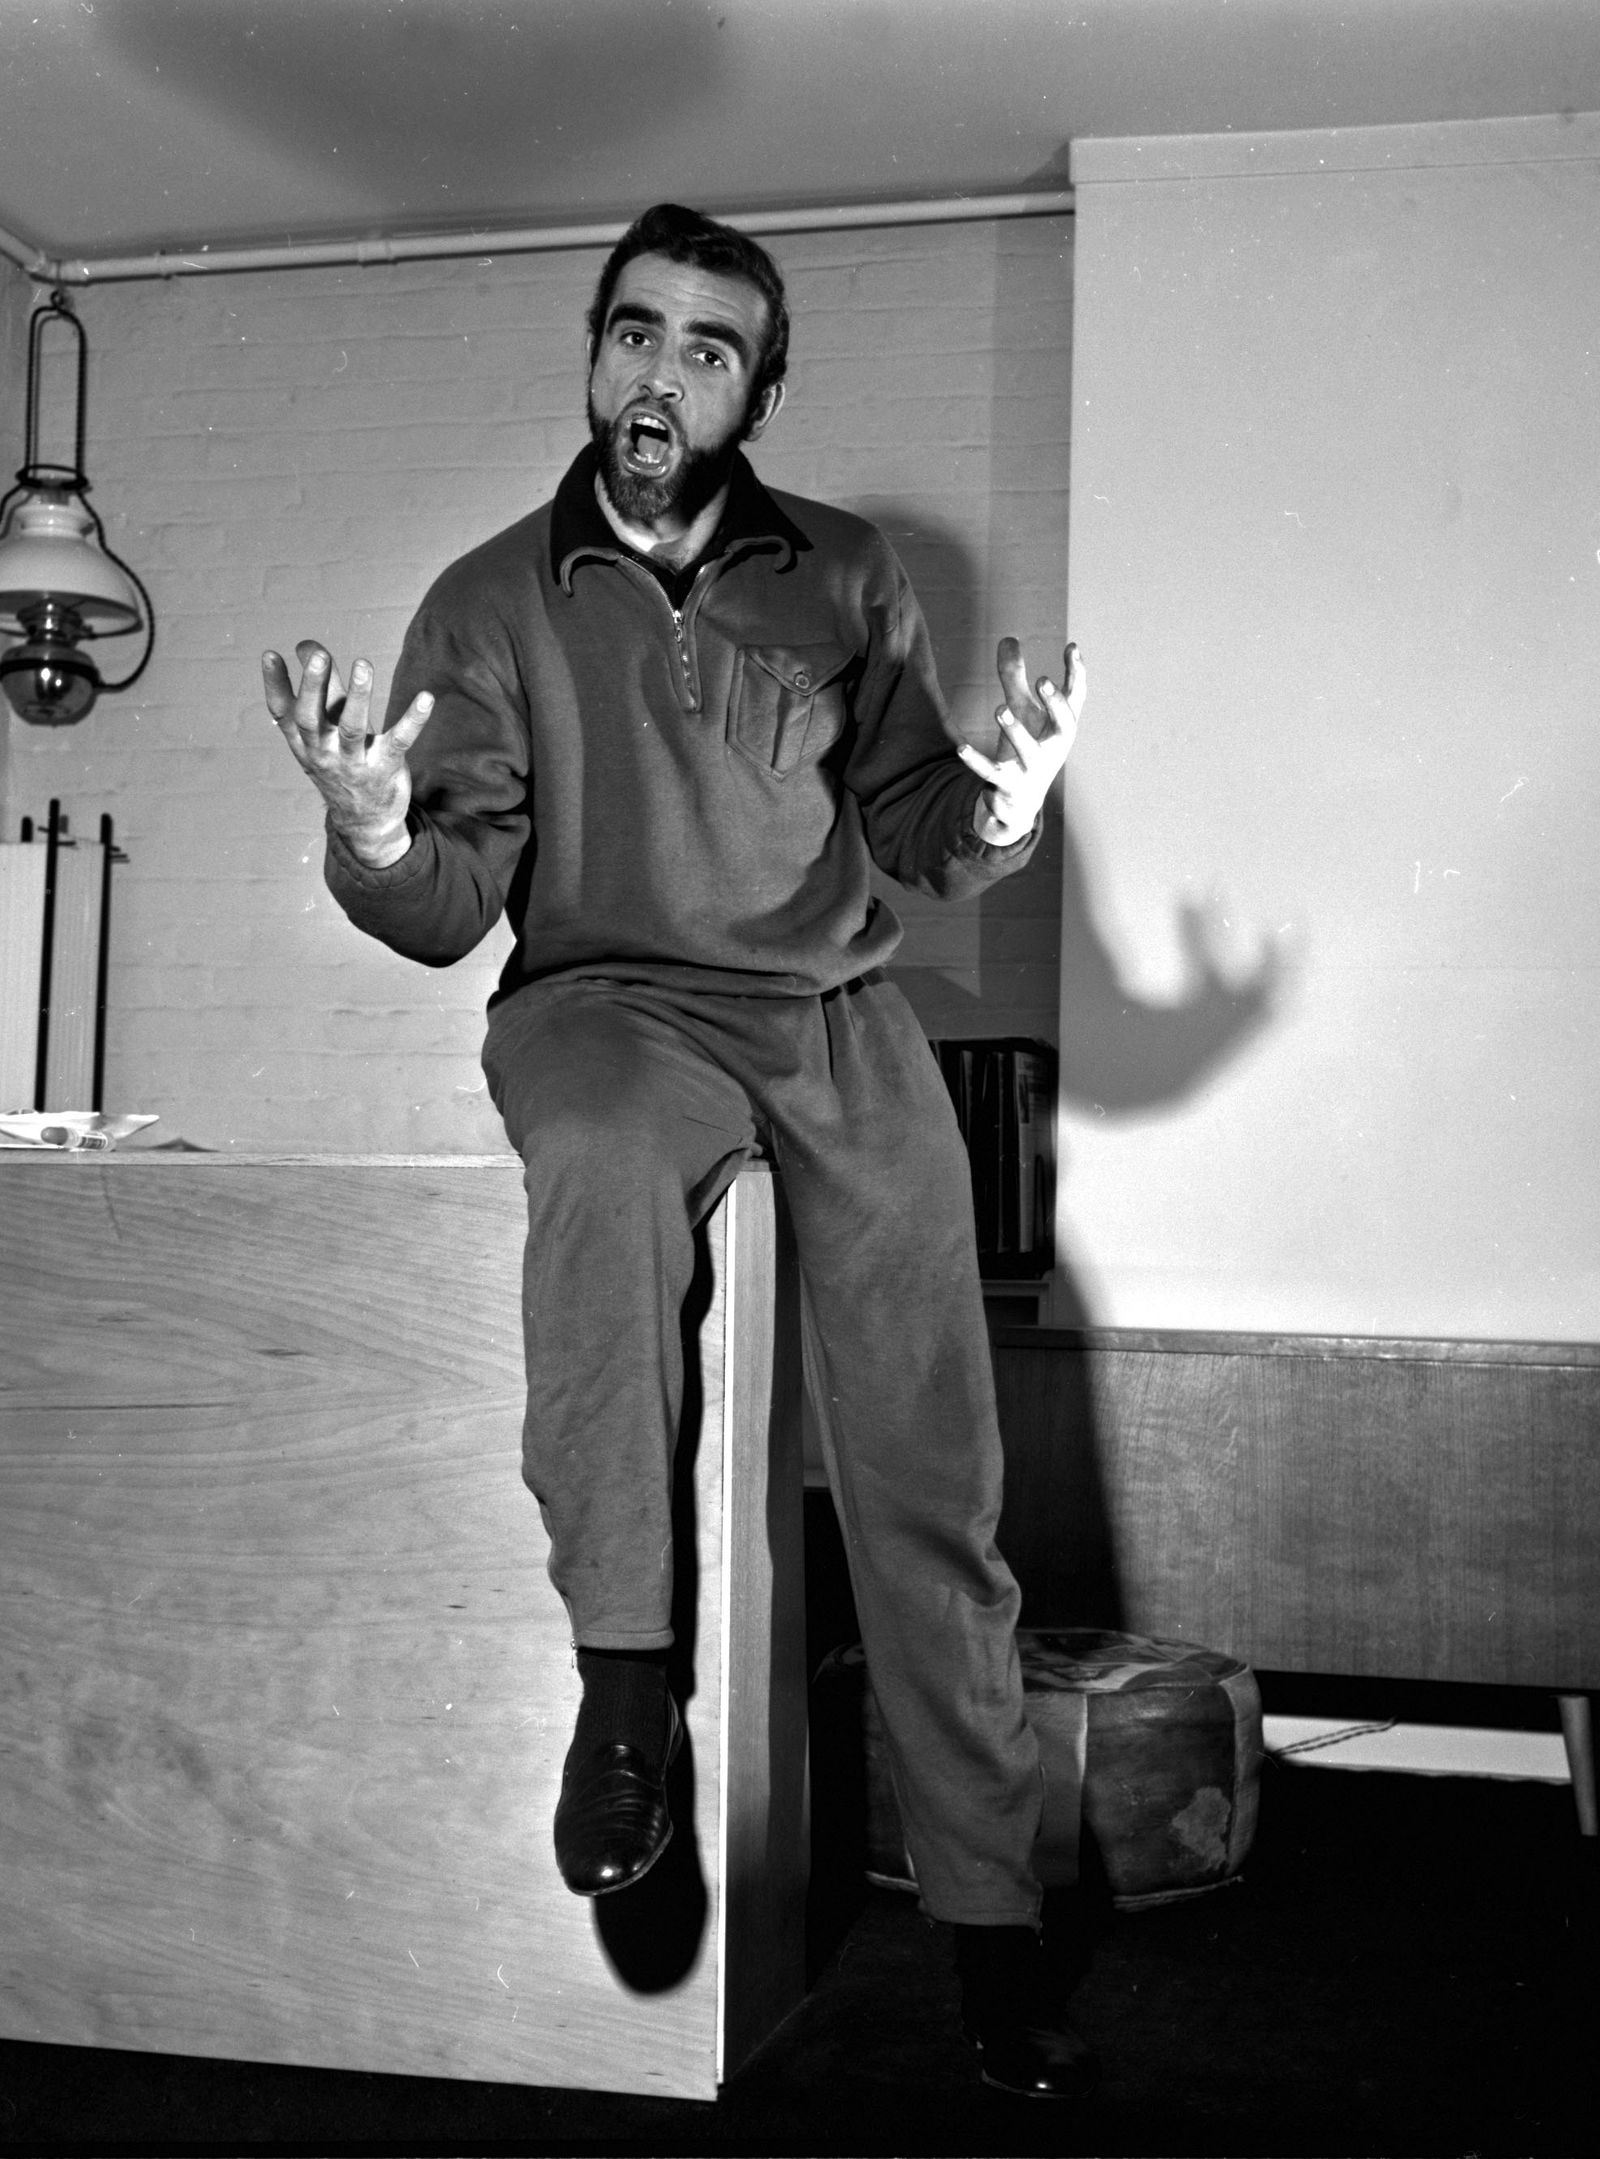 England. 1960. Actor Sean Connery is pictured at his home.